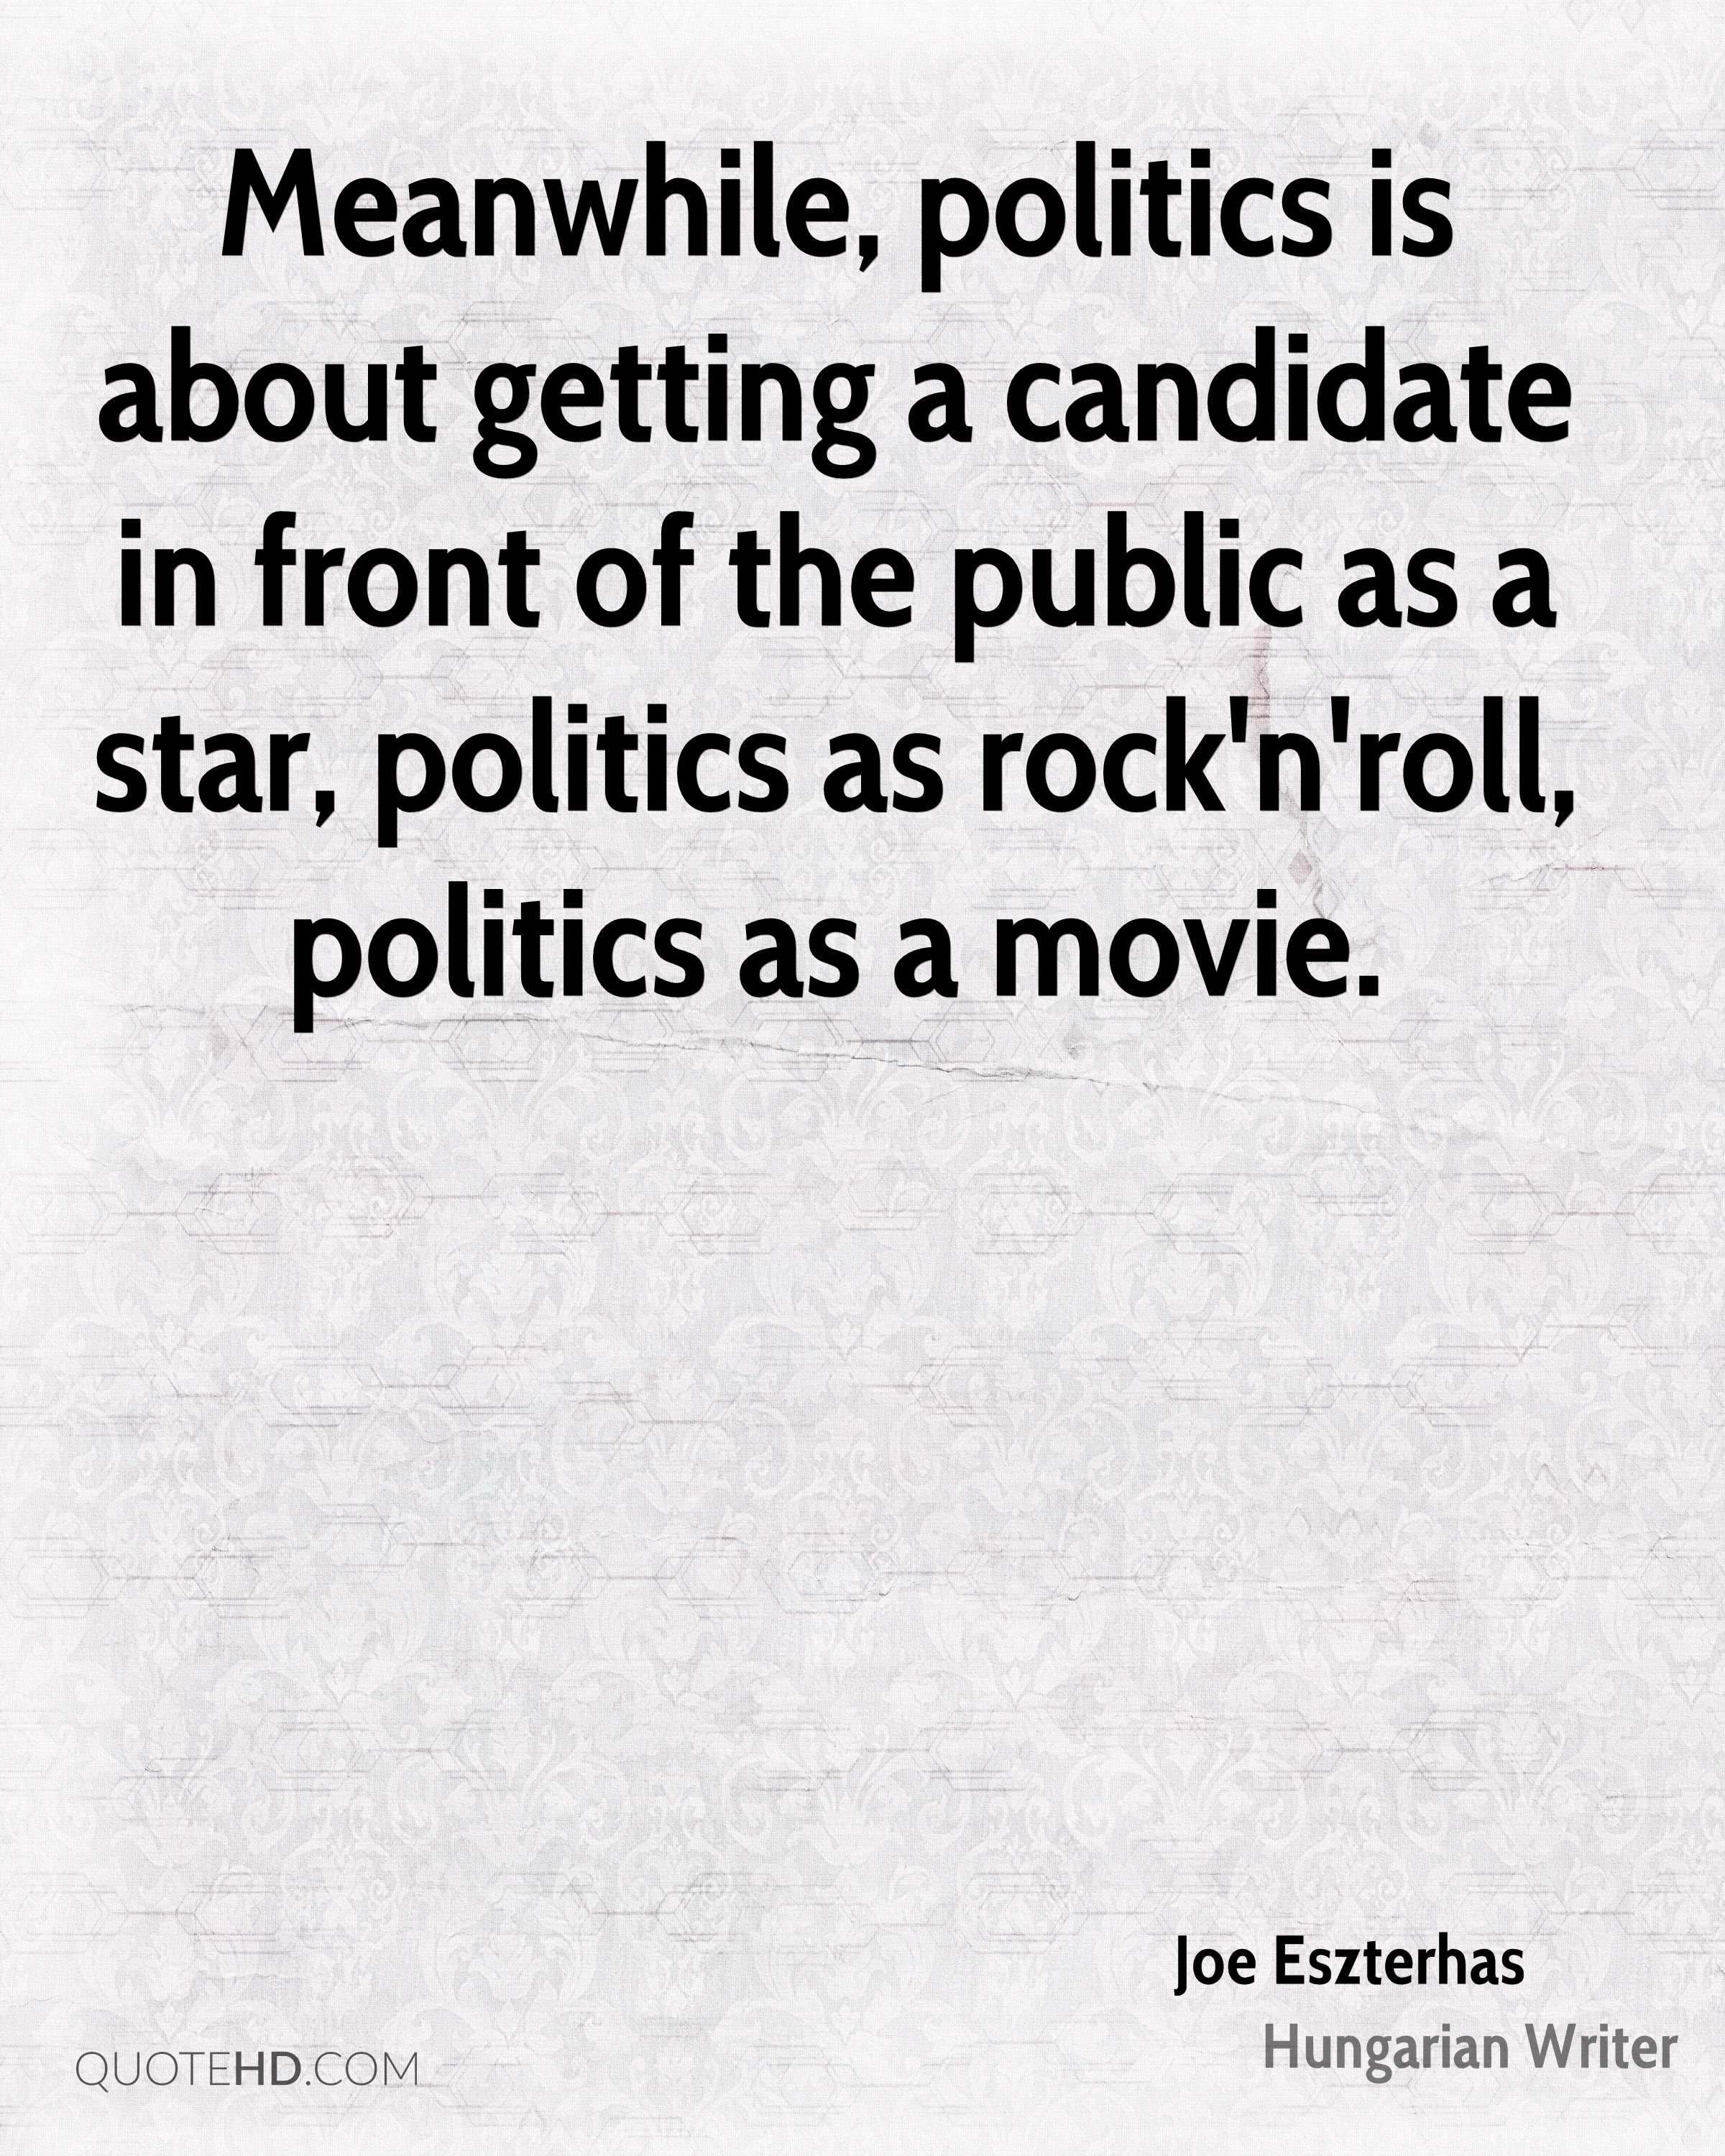 Meanwhile, politics is about getting a candidate in front of the public as a star, politics as rock'n'roll, politics as a movie.